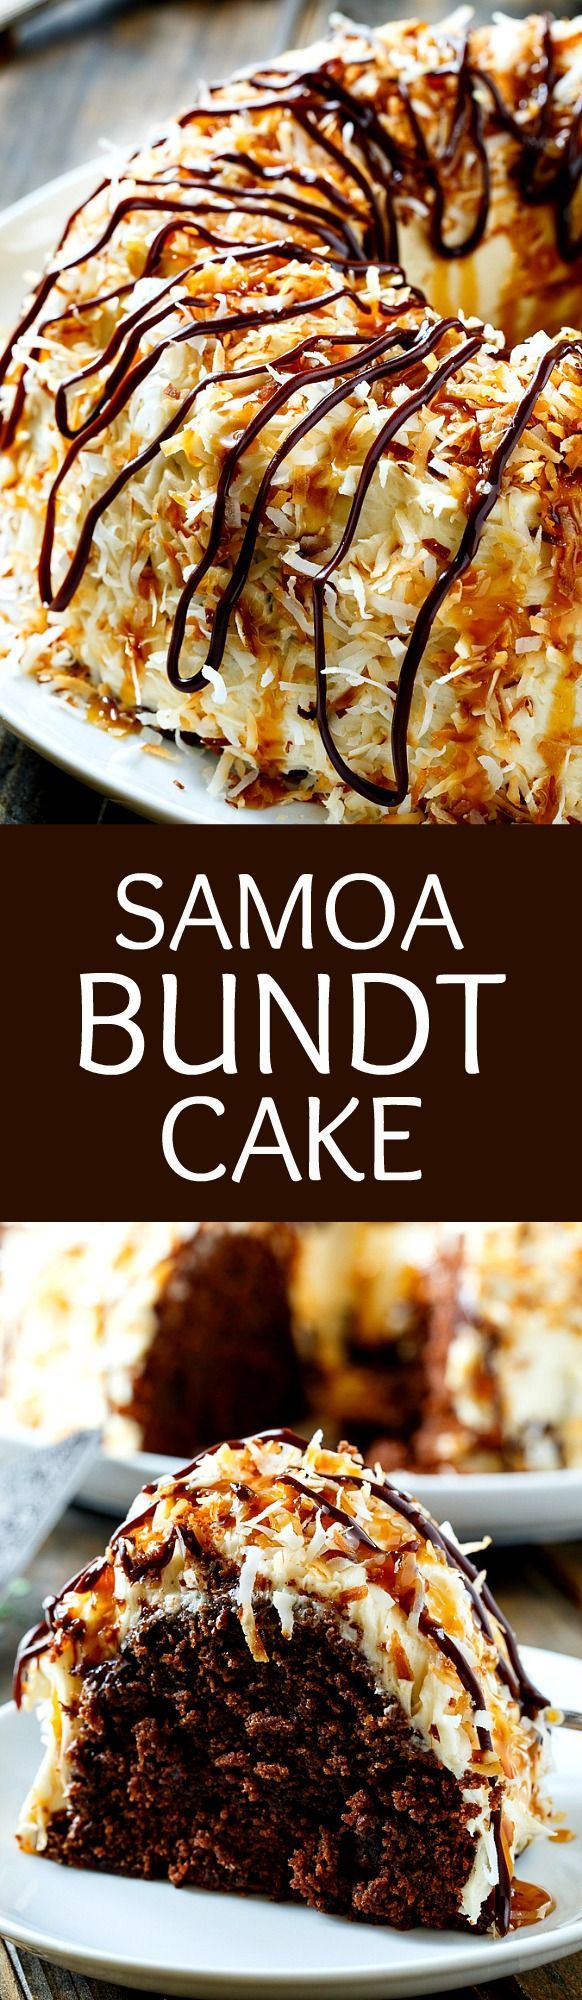 Girl Scout addicts rejoice! Samoa Bundt Cake - A moist chocolate cake covered in caramel icing and toasted coconut.